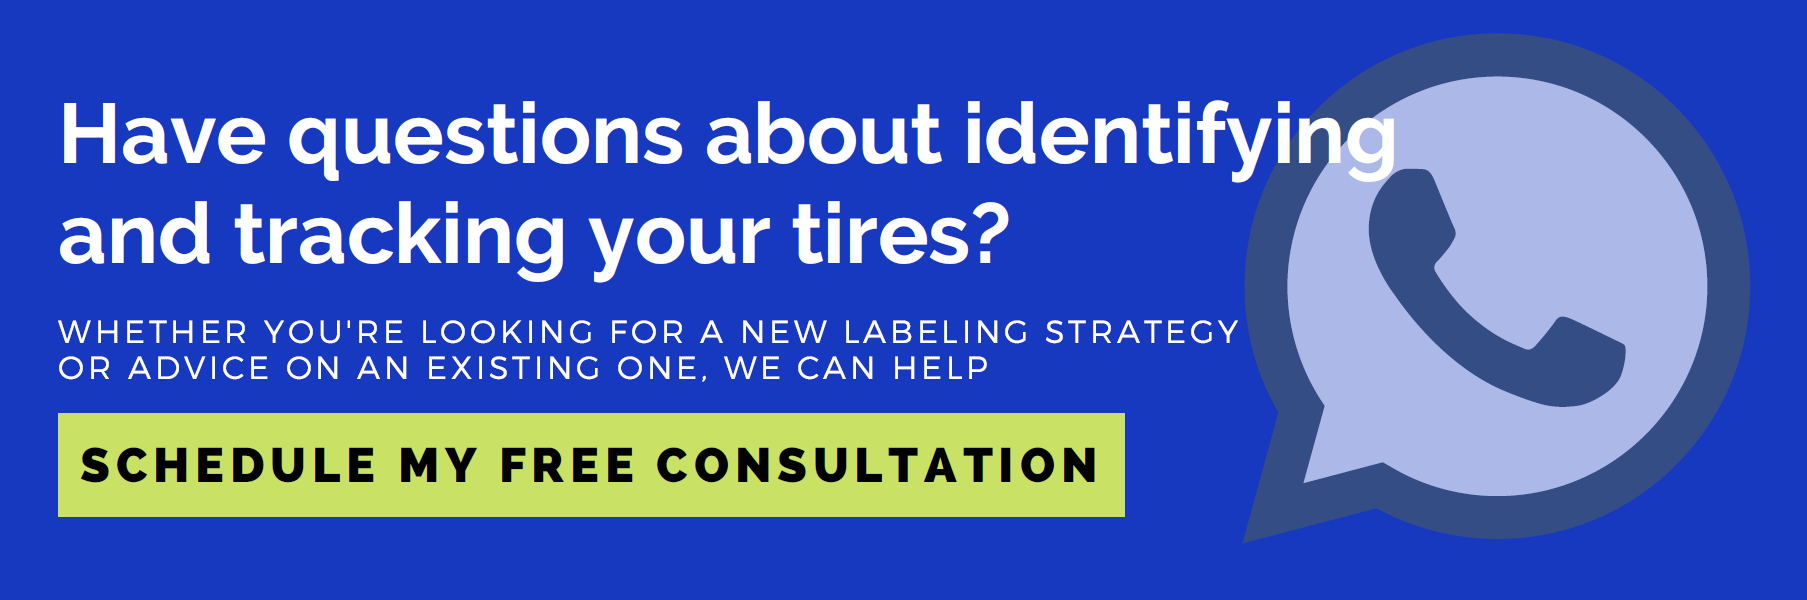 Have questions about identifying and tracking your tires? Schedule my free consultation